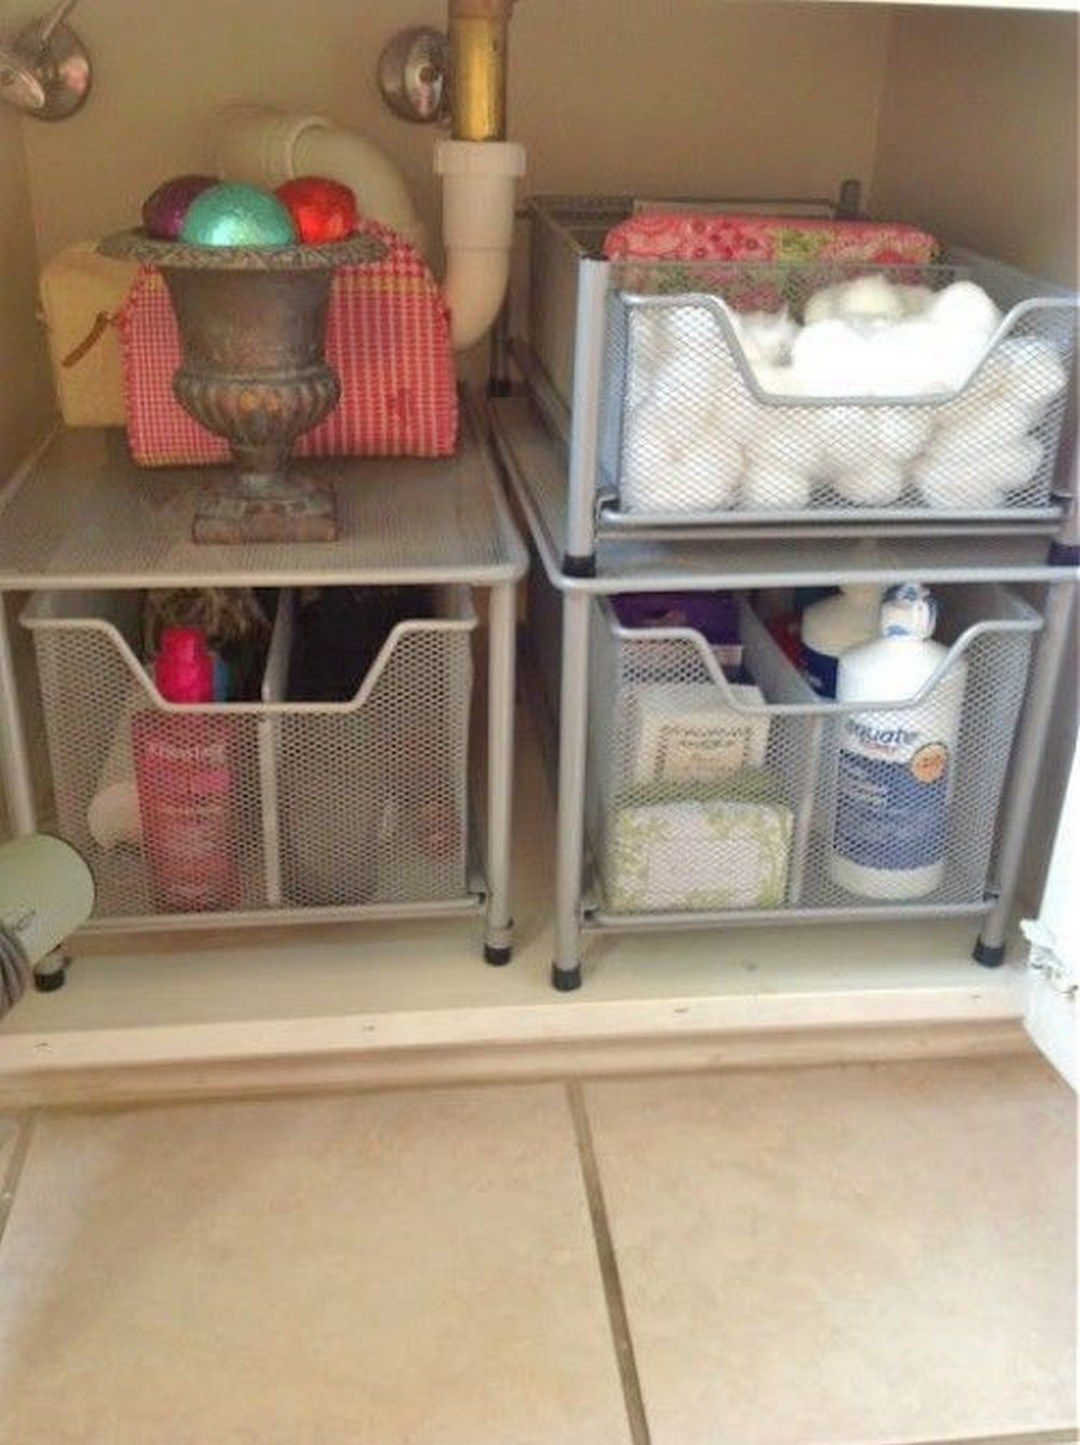 23 Ways to Organize a Bathroom Without a Medicine Cabinet or Drawers | decorsavage #organizemedicinecabinets 23 Ways to Organize a Bathroom Without a Medicine Cabinet or Drawers | decorsavage #organizemedicinecabinets